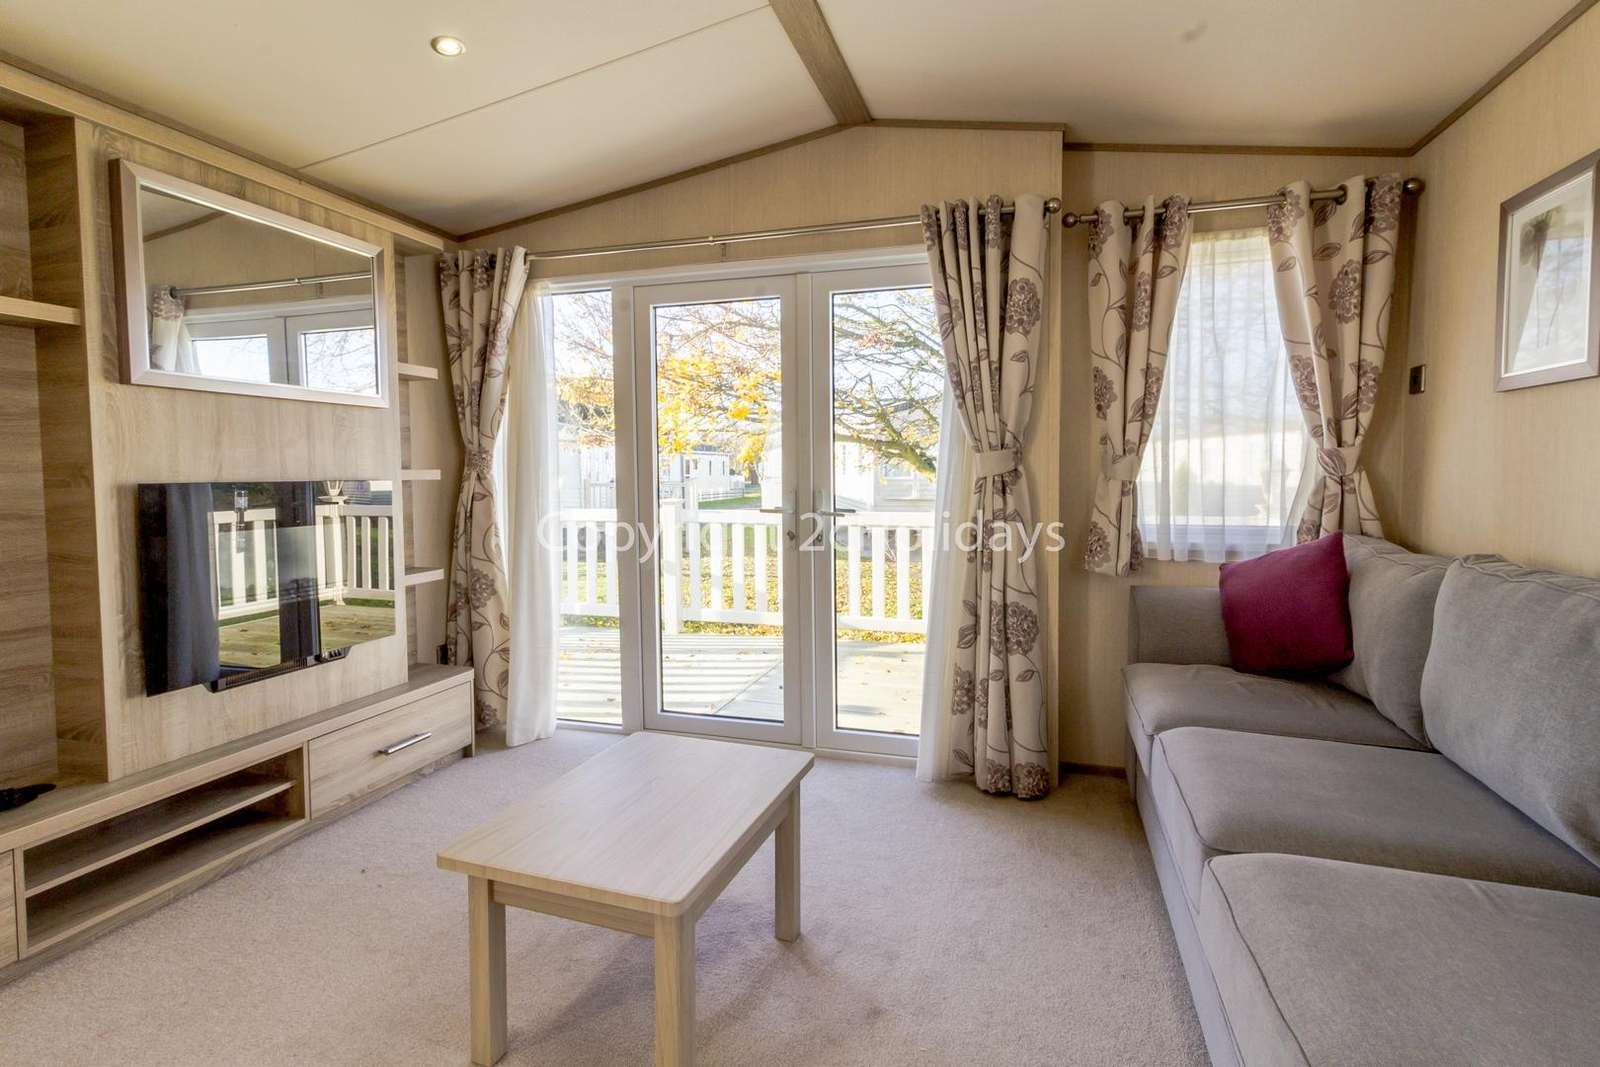 Stunning lounge with double doors leading to the decked area!